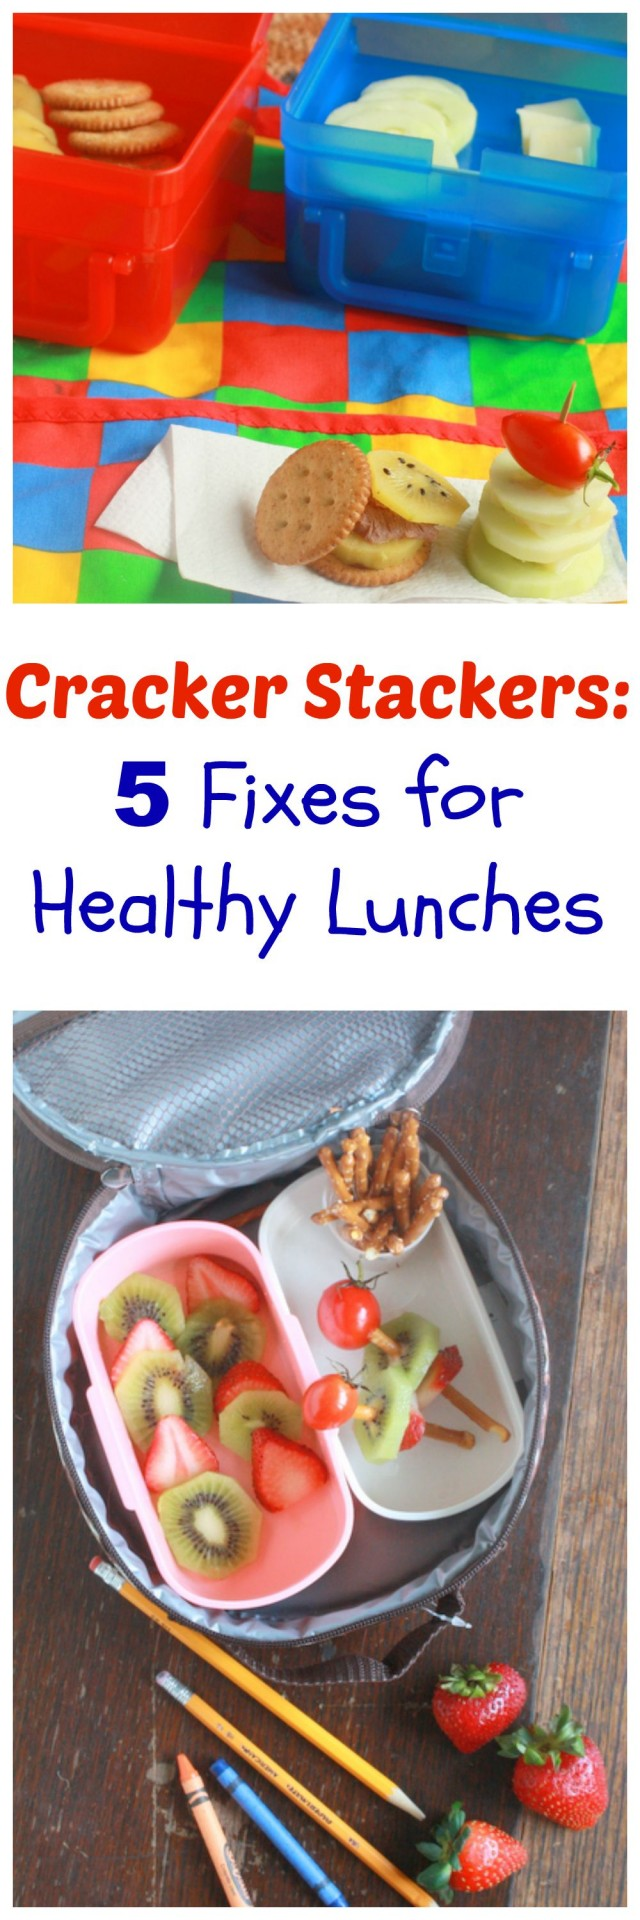 5 Fixes for Healthy Lunches : Cracker Stackers | TeaspoonOfSpice.com #kids